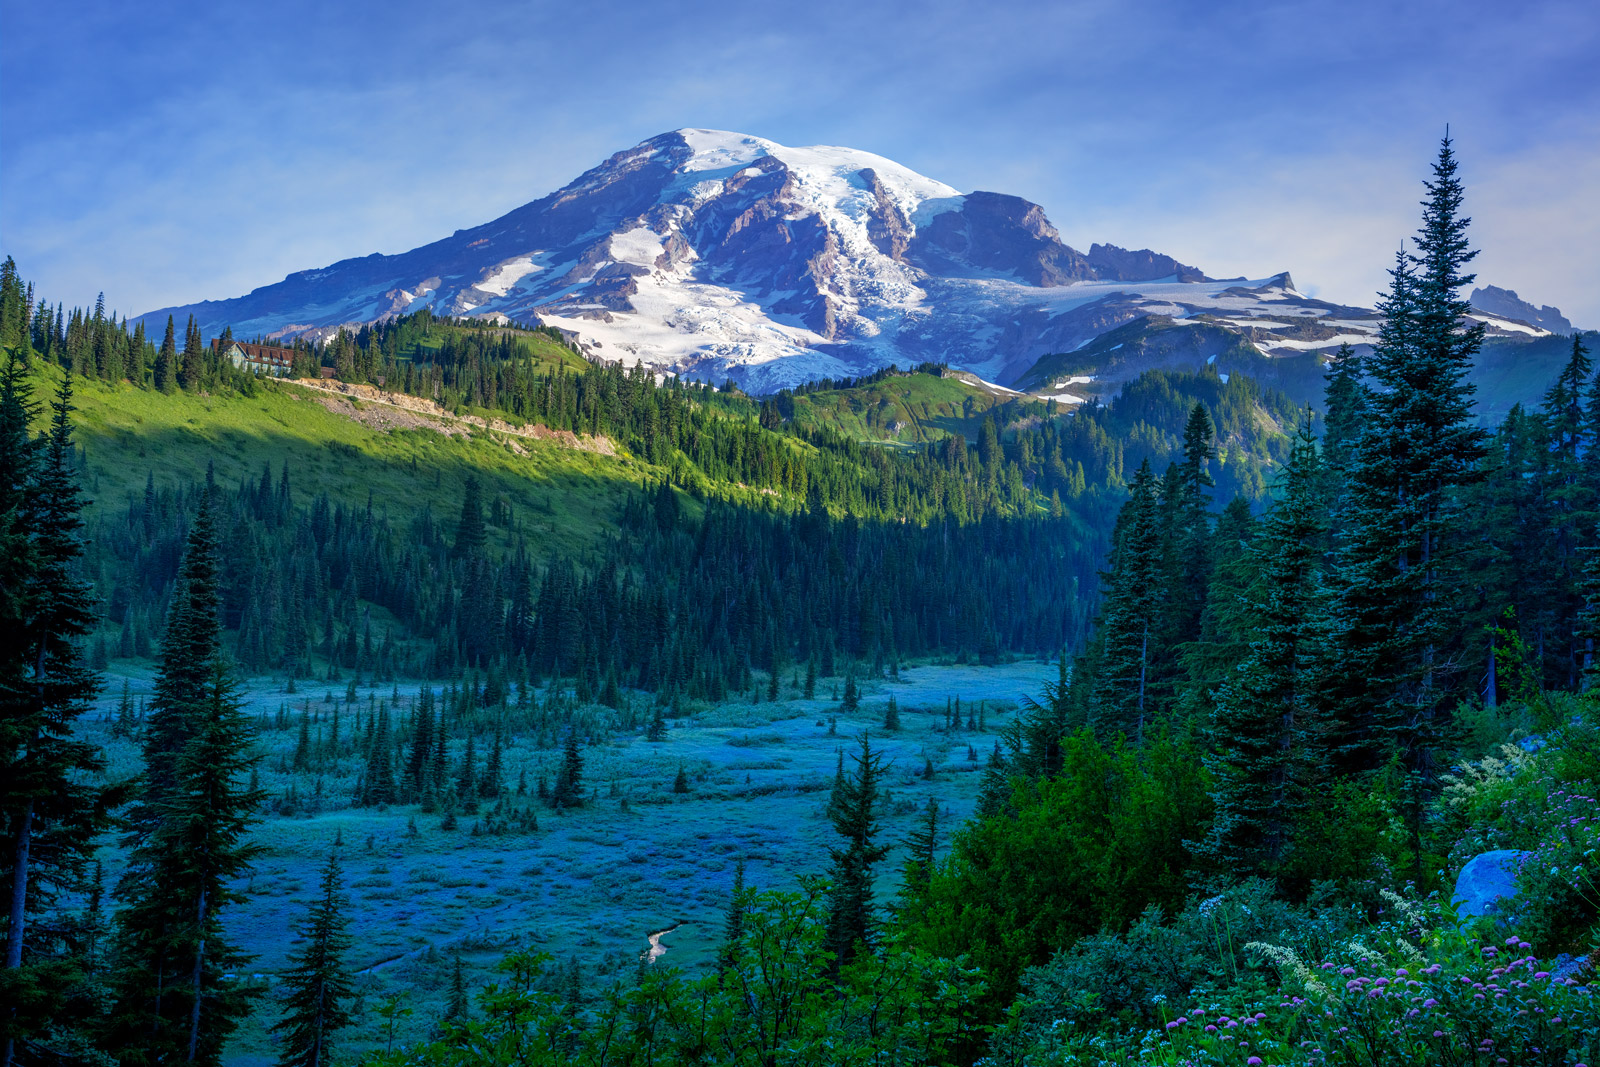 A Limited Edition, Fine Art photograph of Mount Rainier in Washington in the early morning.  Available as a Fine Art Print, Metal...